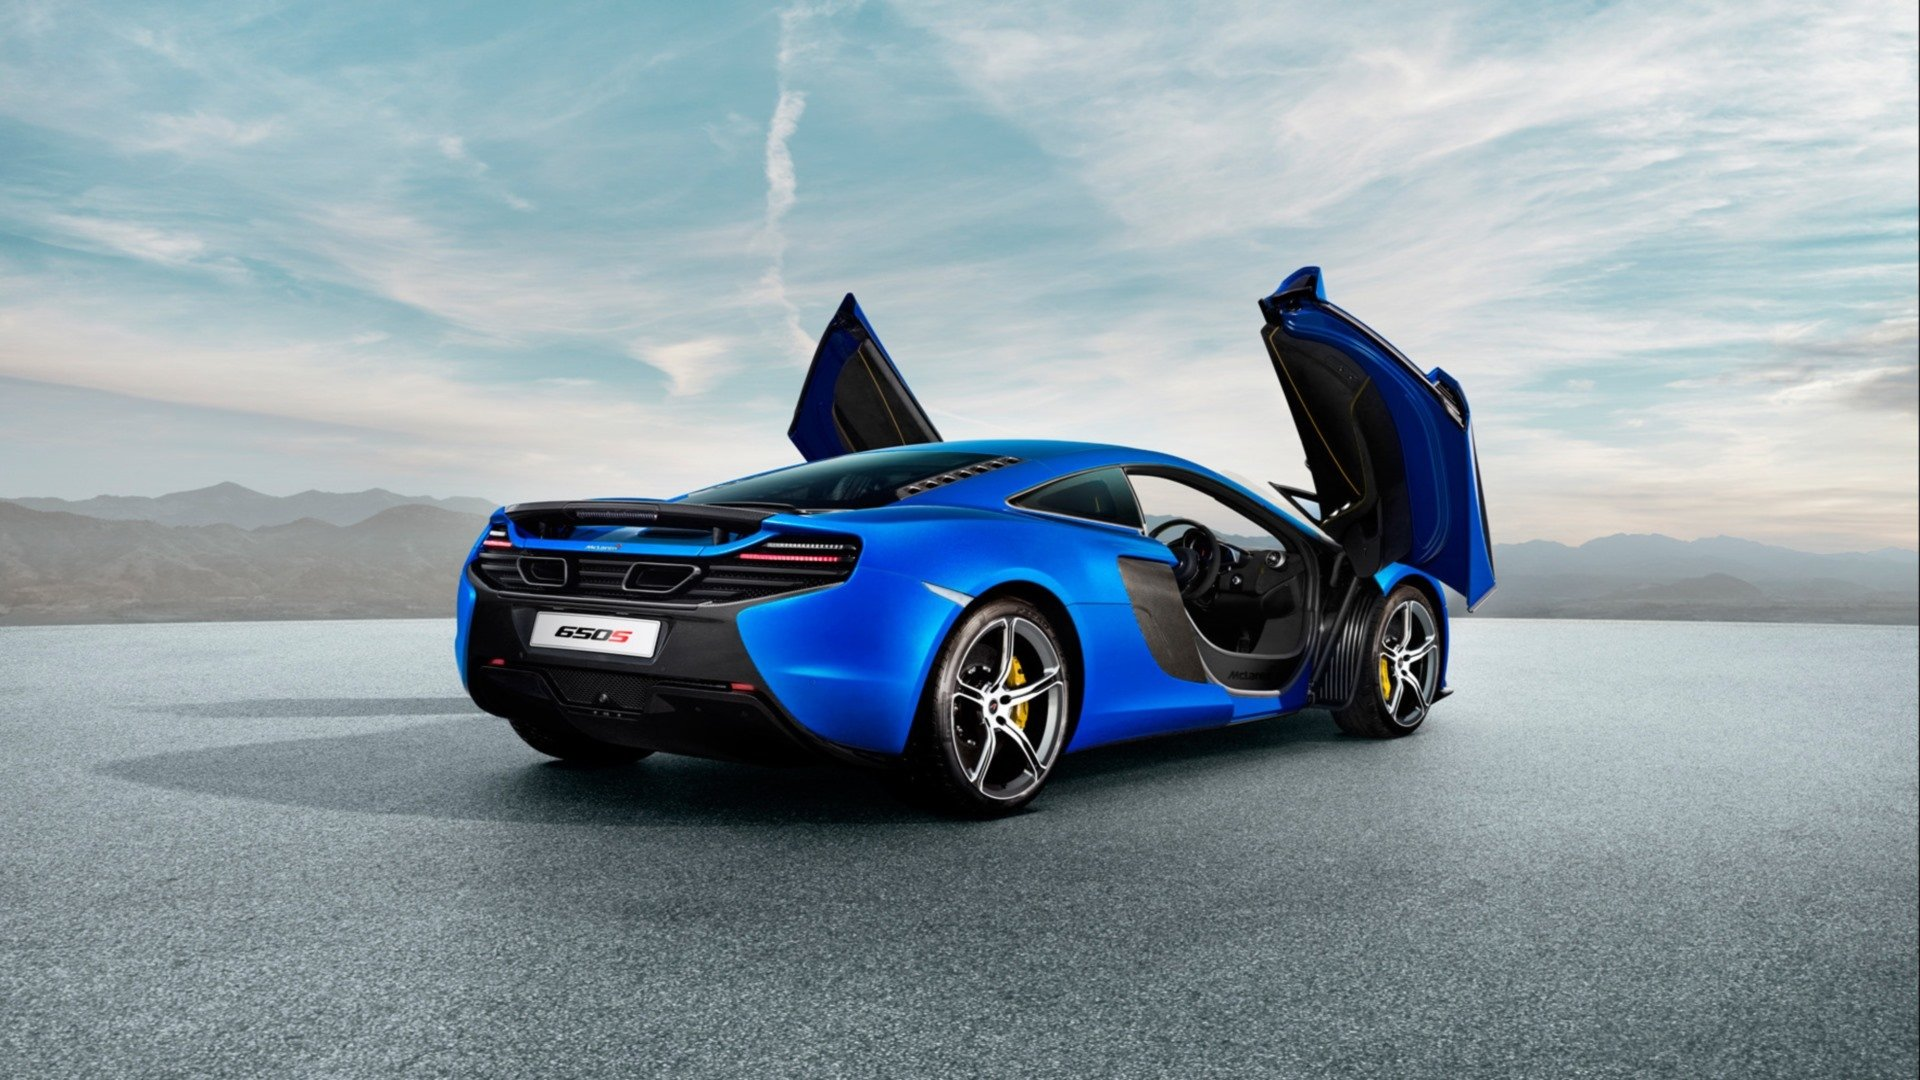 Vehicles - McLaren 650S  Blue Car Supercar Car Vehicle McLaren Wallpaper